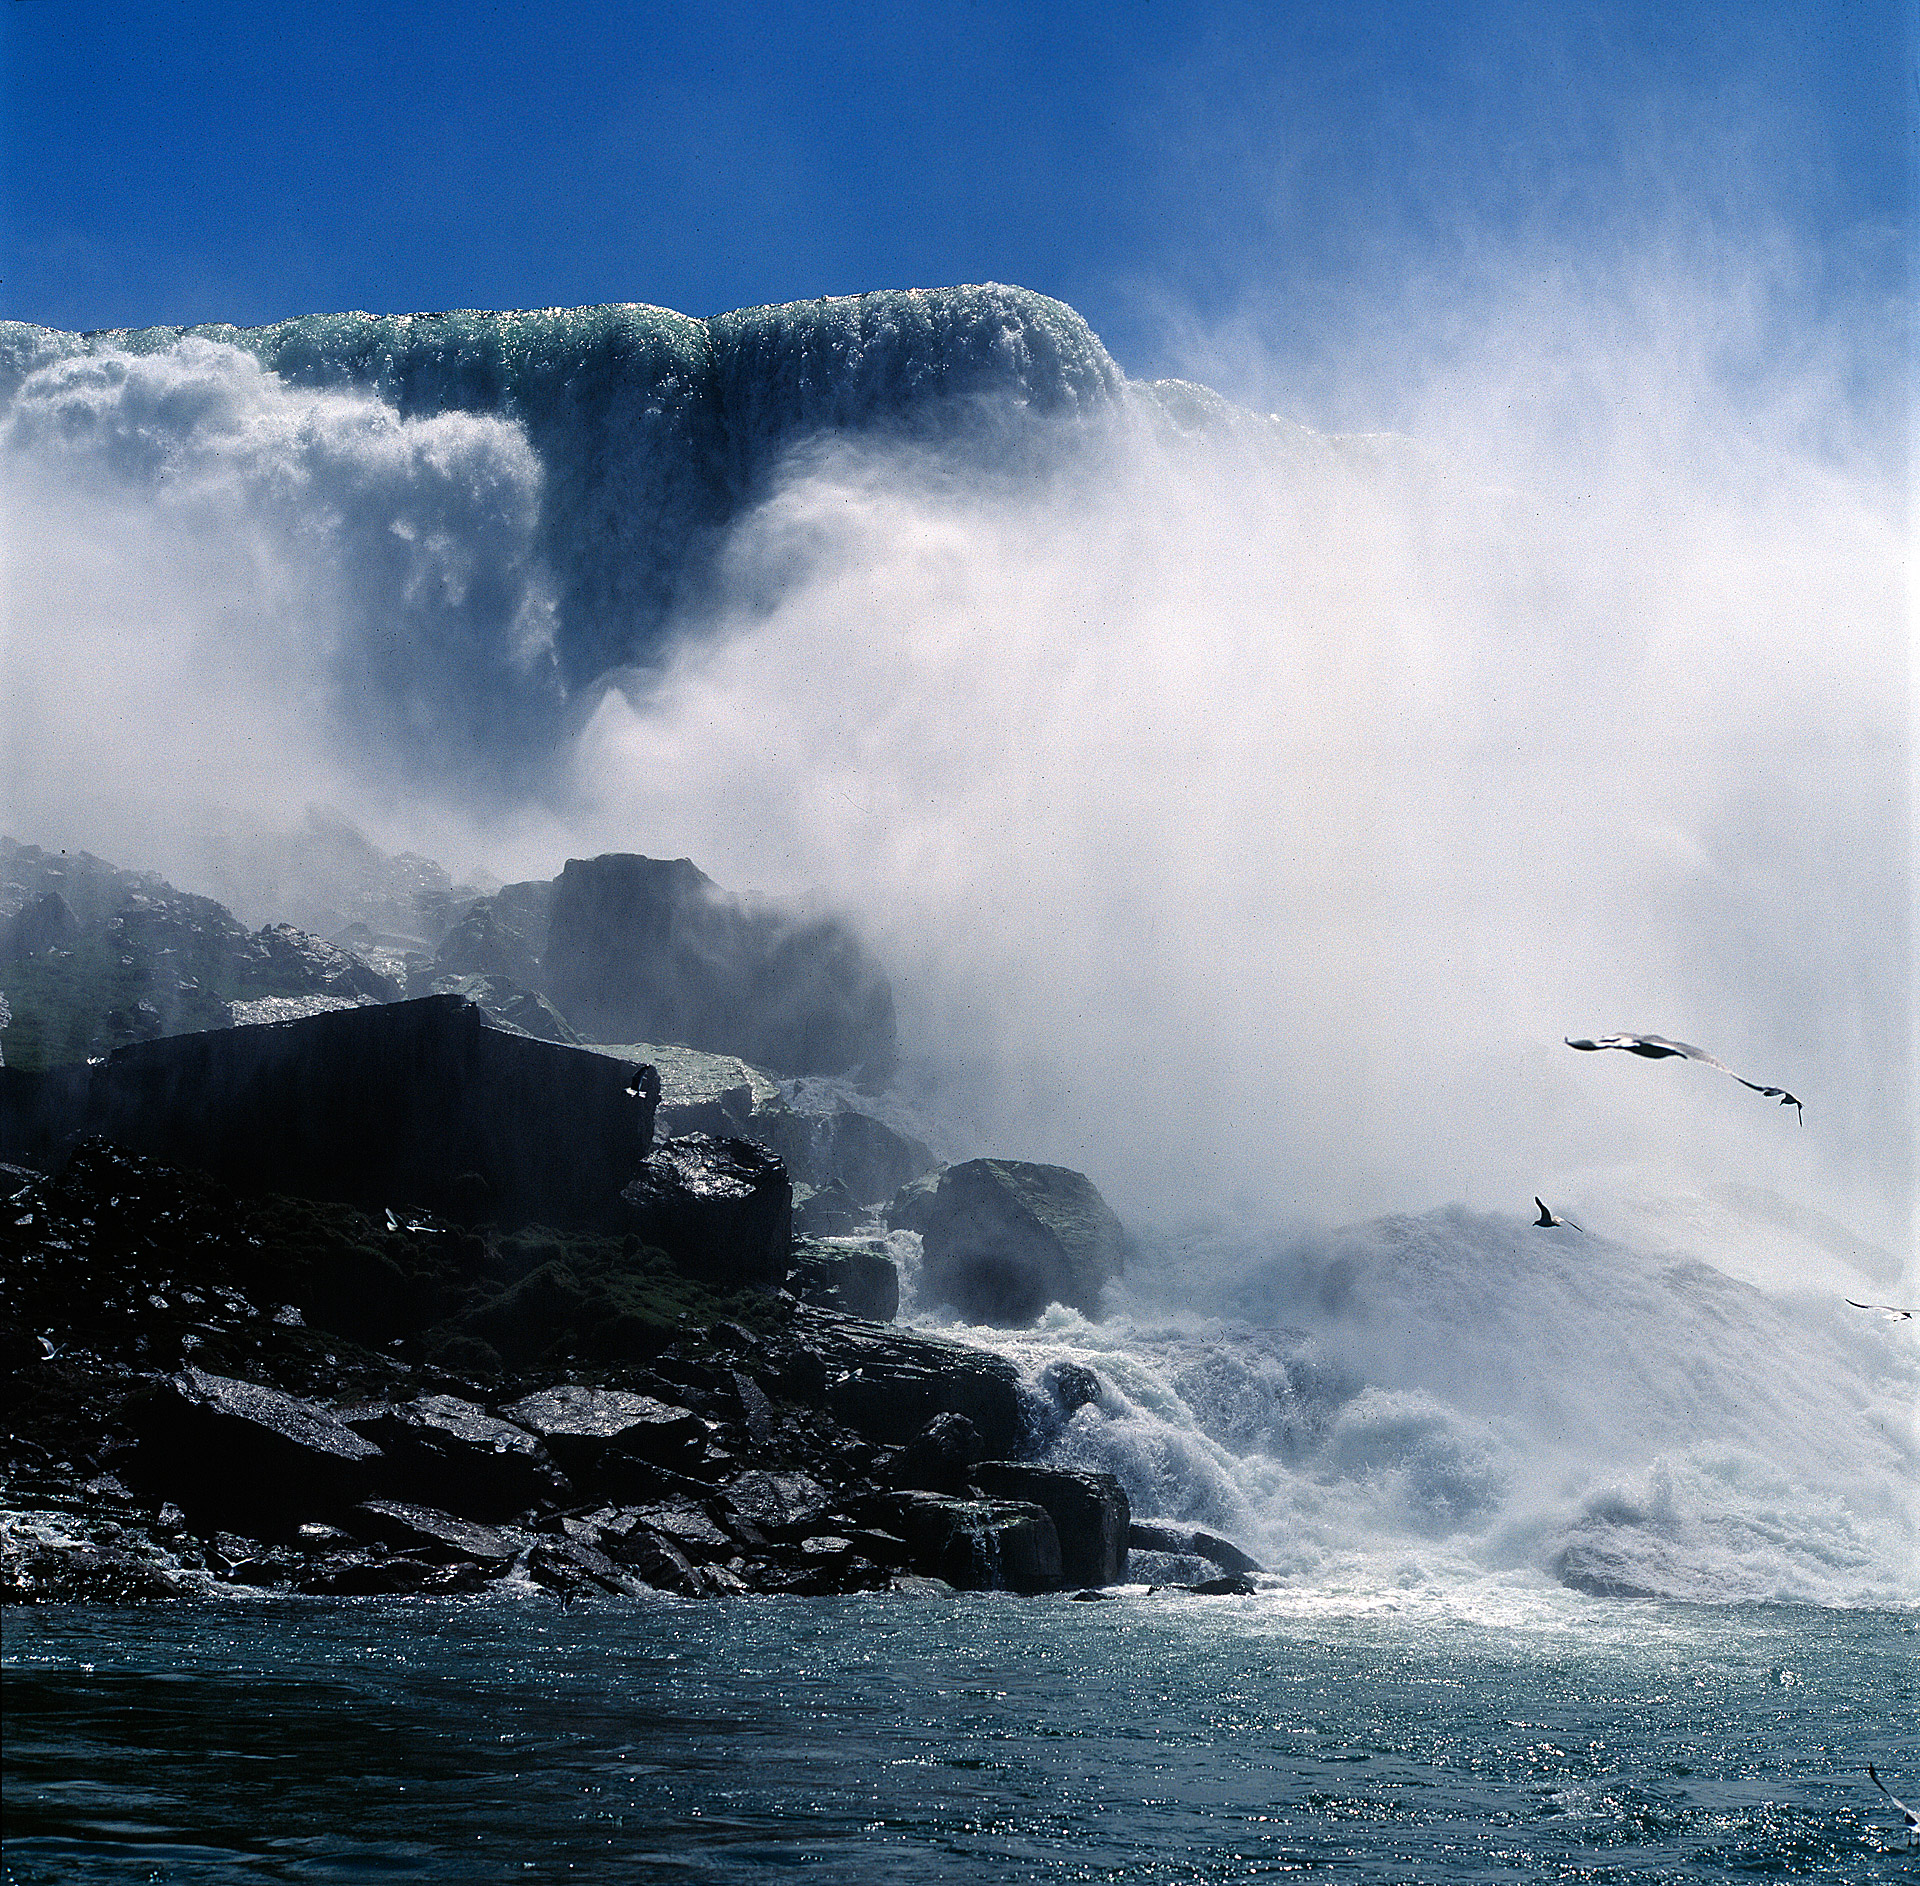 Niagara Falls is is amazing for a landscape photographer